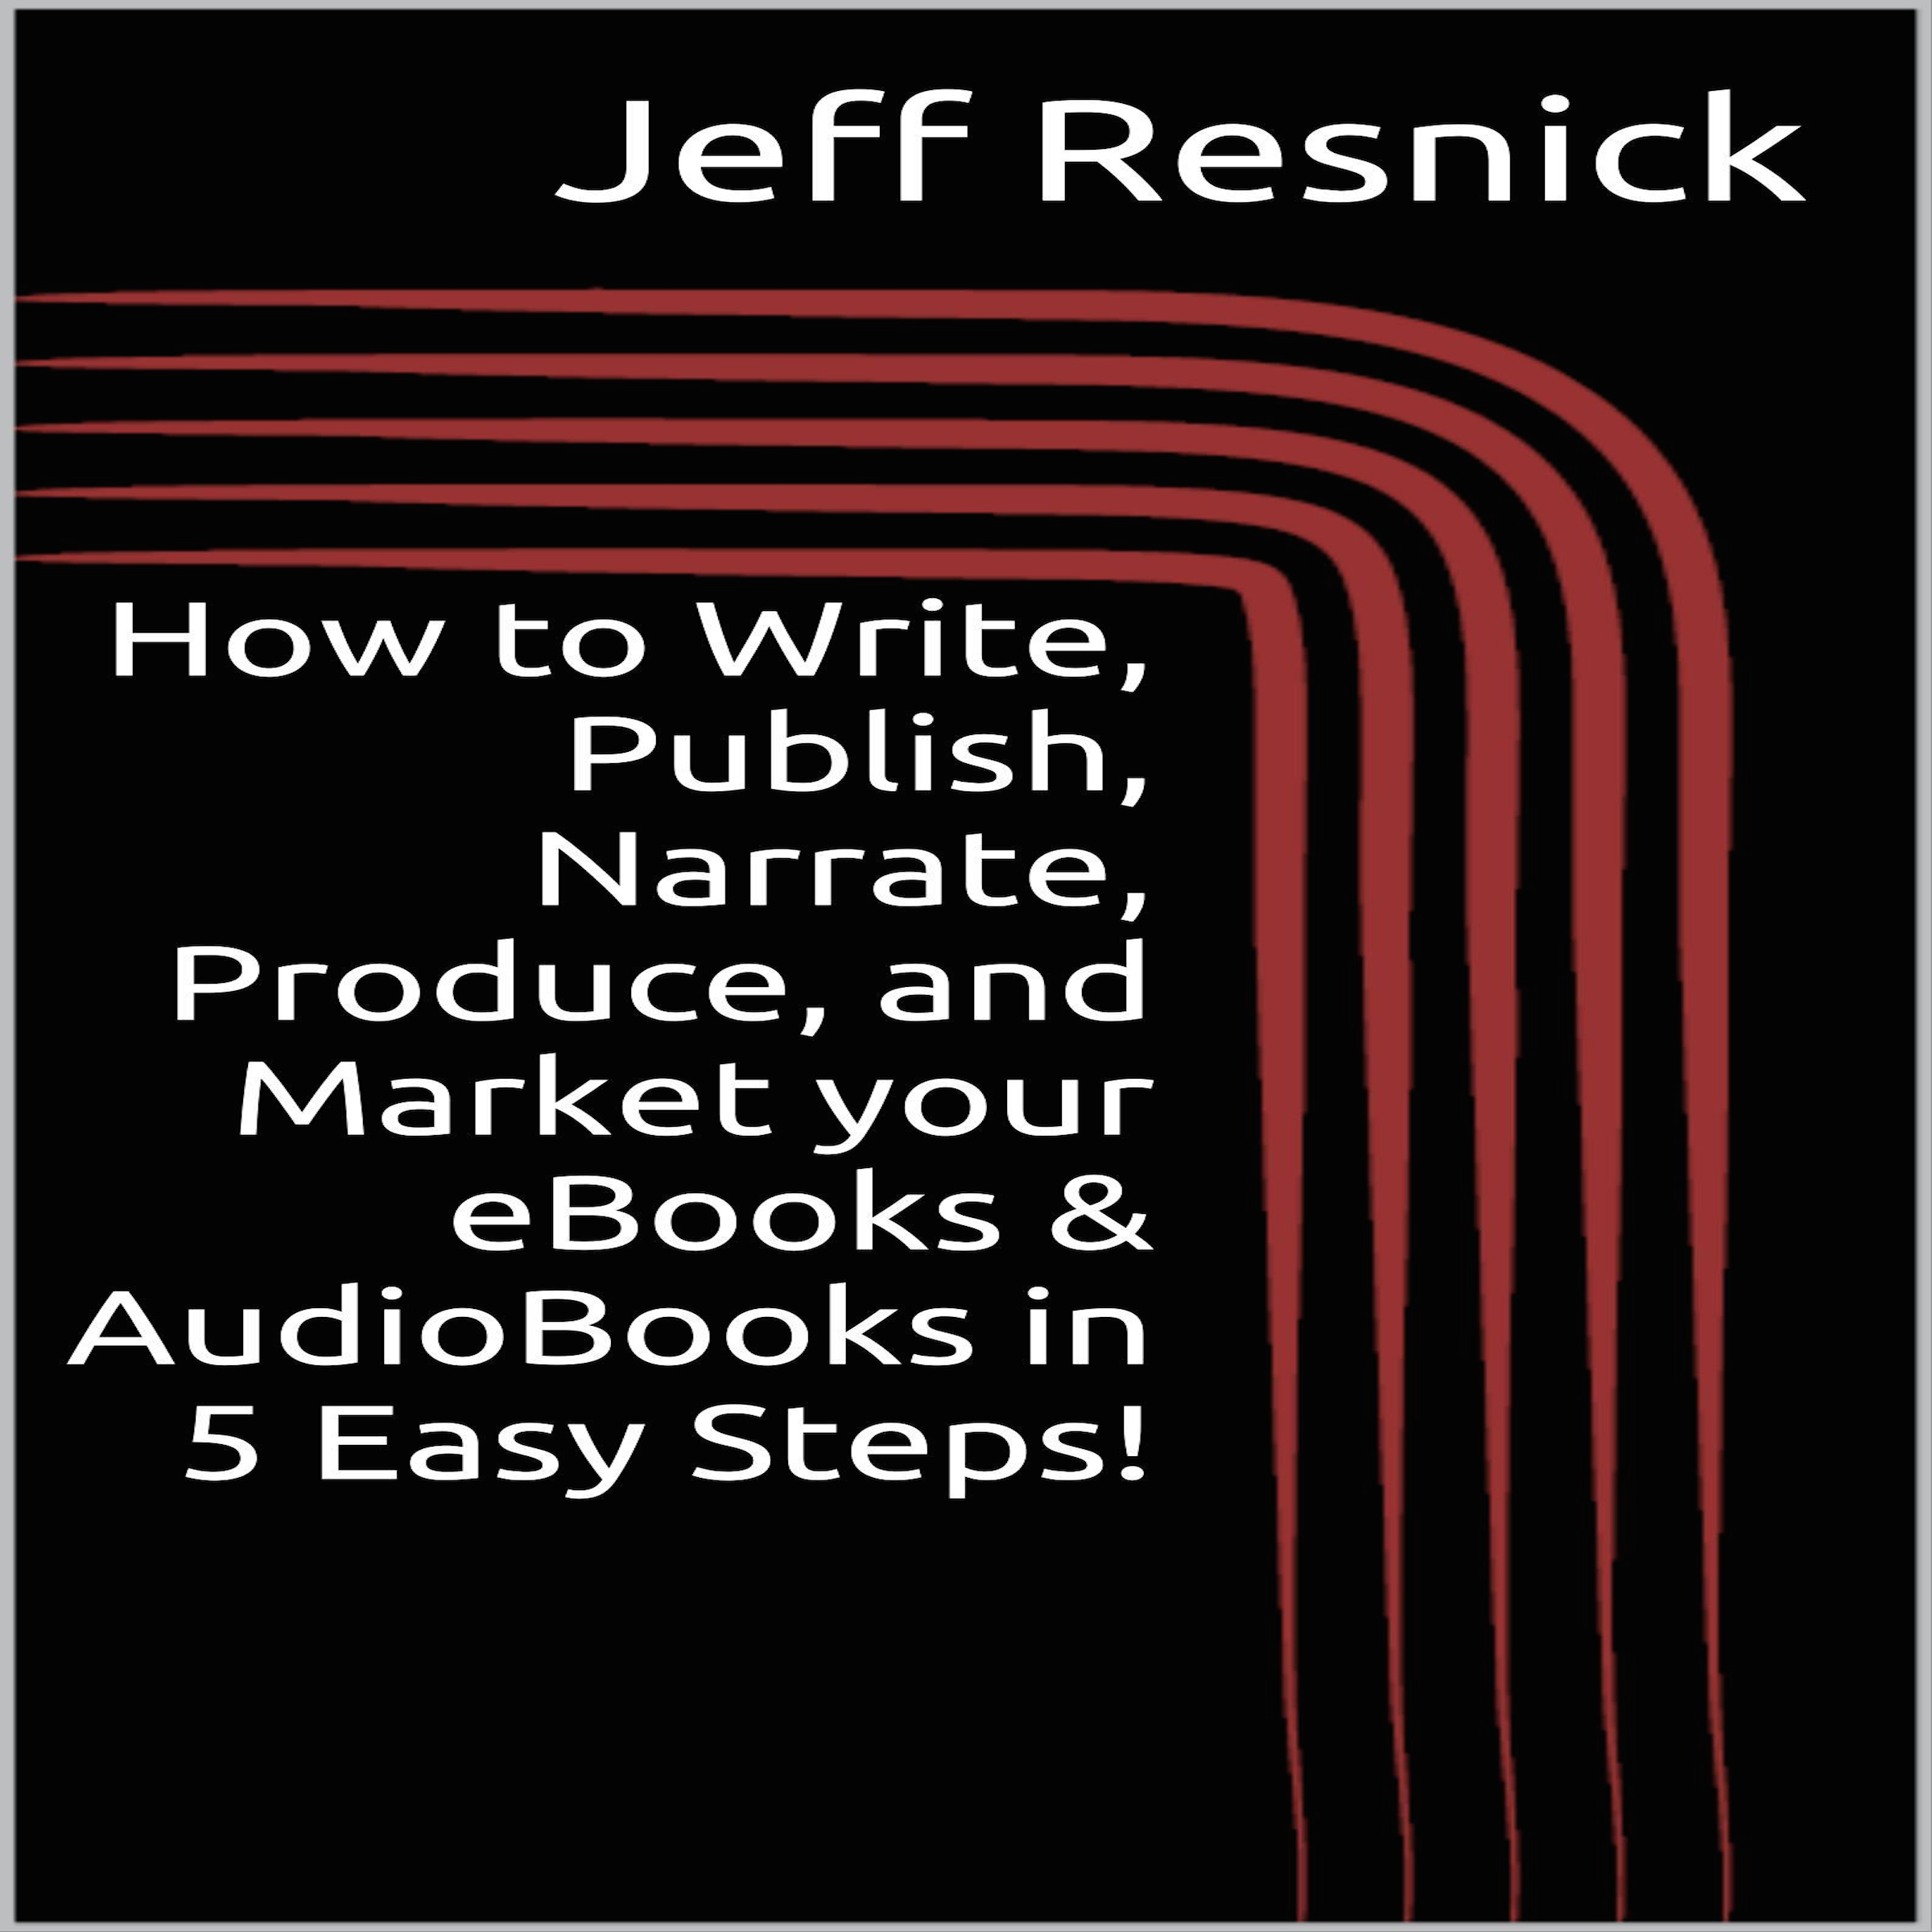 How to Write, Publish, Narrate, Produce, and Market your eBooks in 5 Easy Steps!